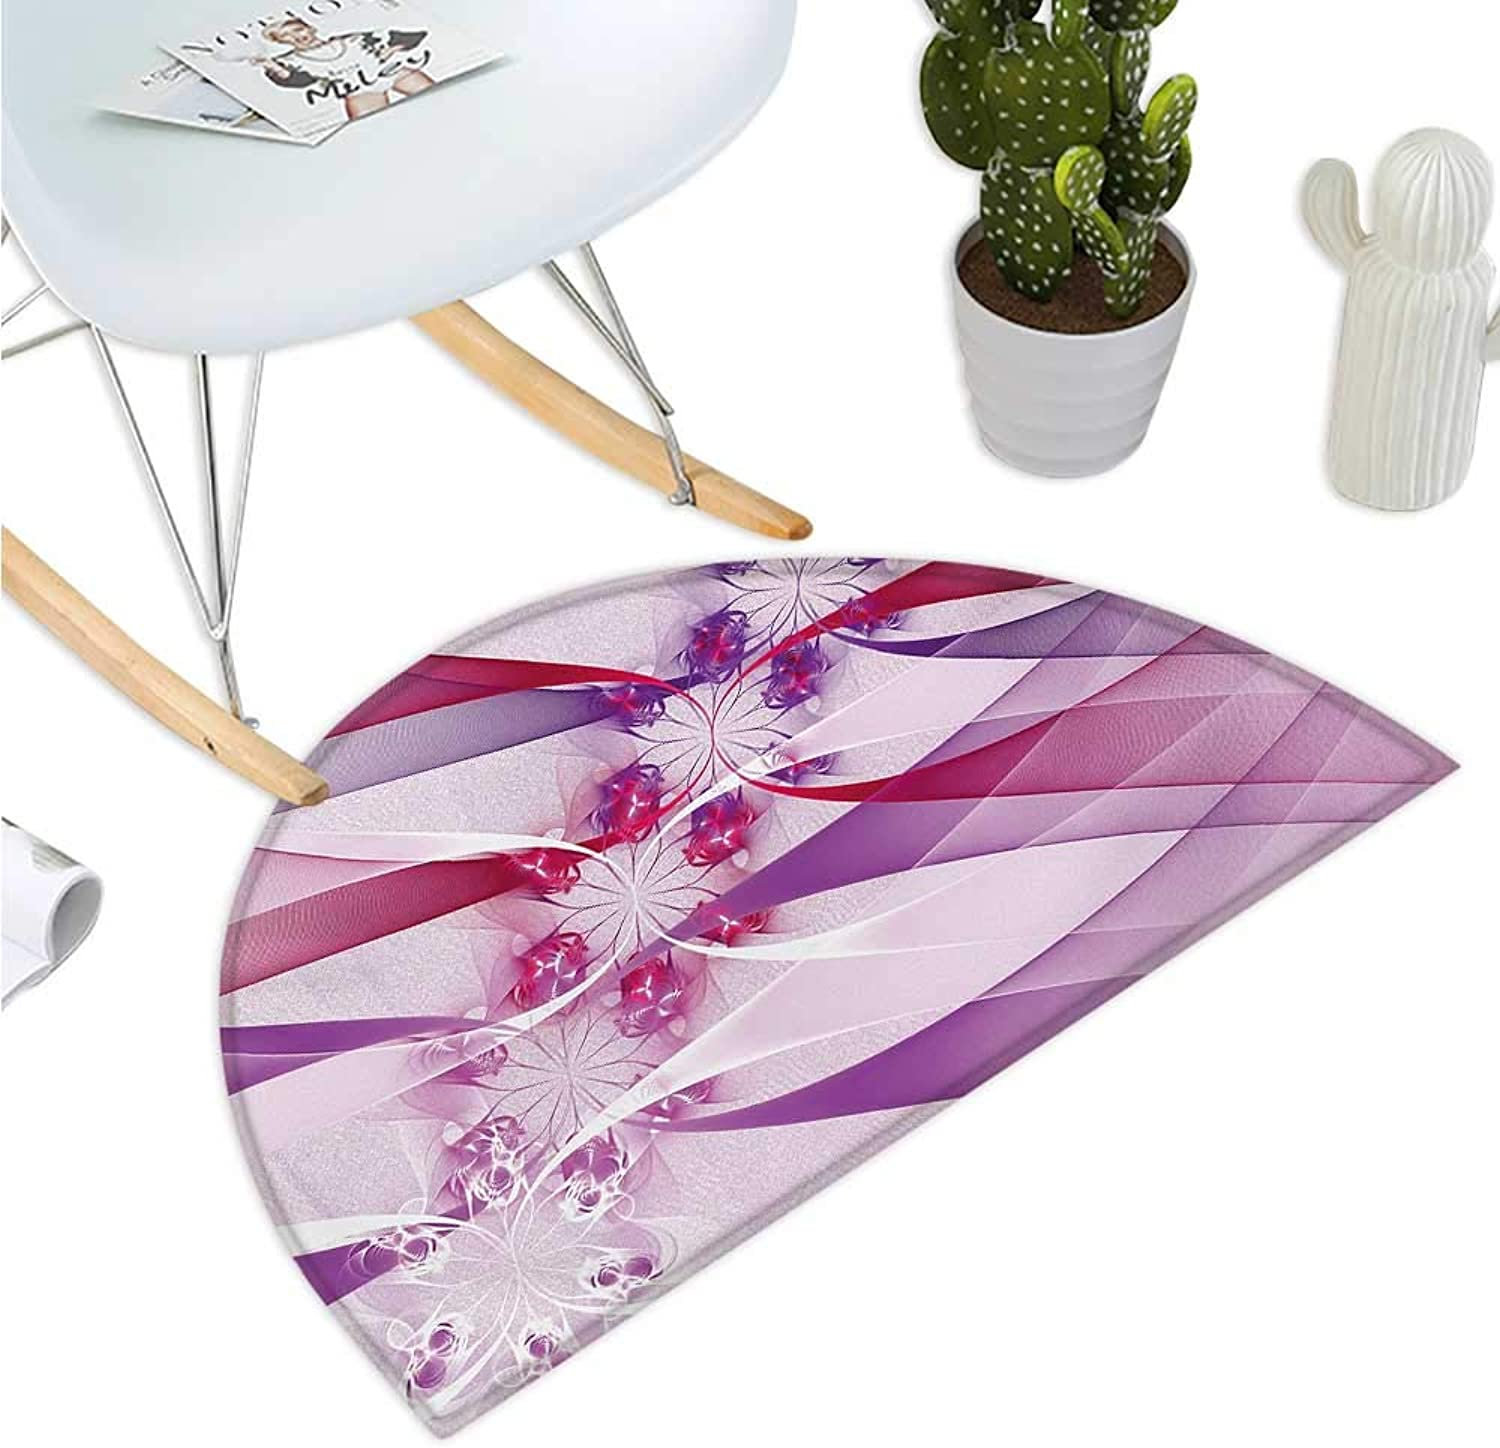 Fractal Semicircular Cushion Digital Flowers in Swirling Parallel Lines in colord Tones Artistic Illustration Bathroom Mat H 35.4  xD 53.1  purple Pink